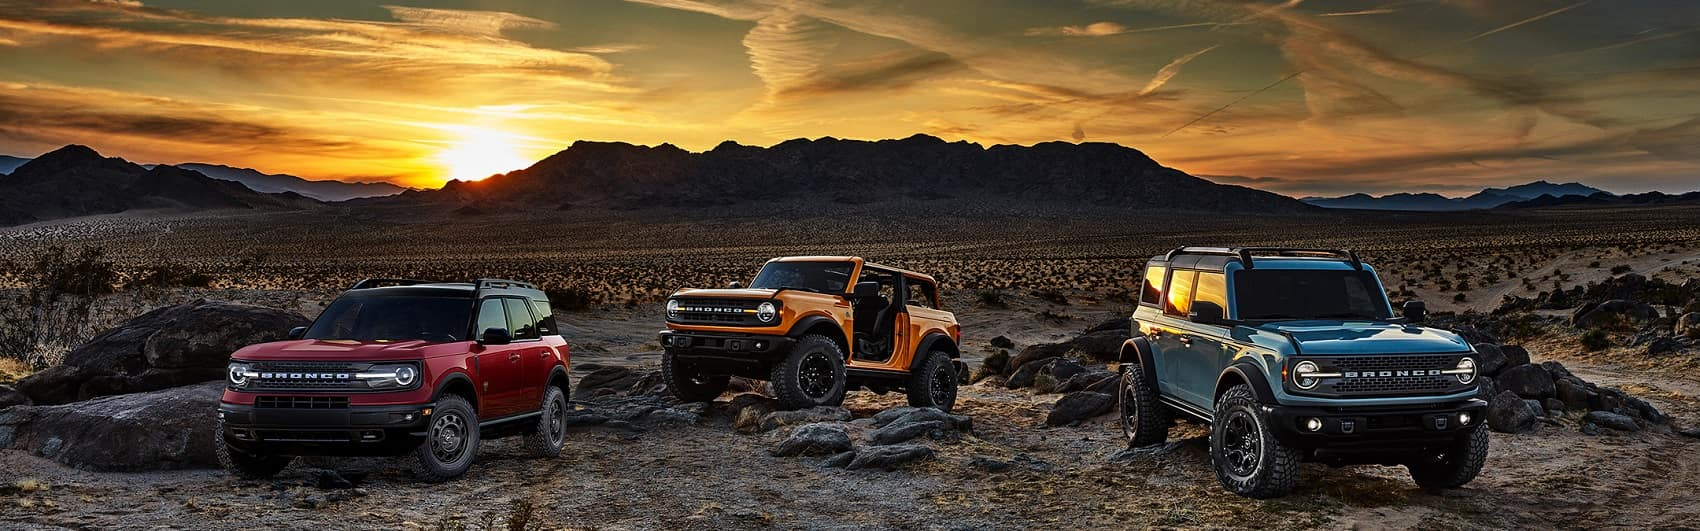 Reserve 2021 Ford Bronco